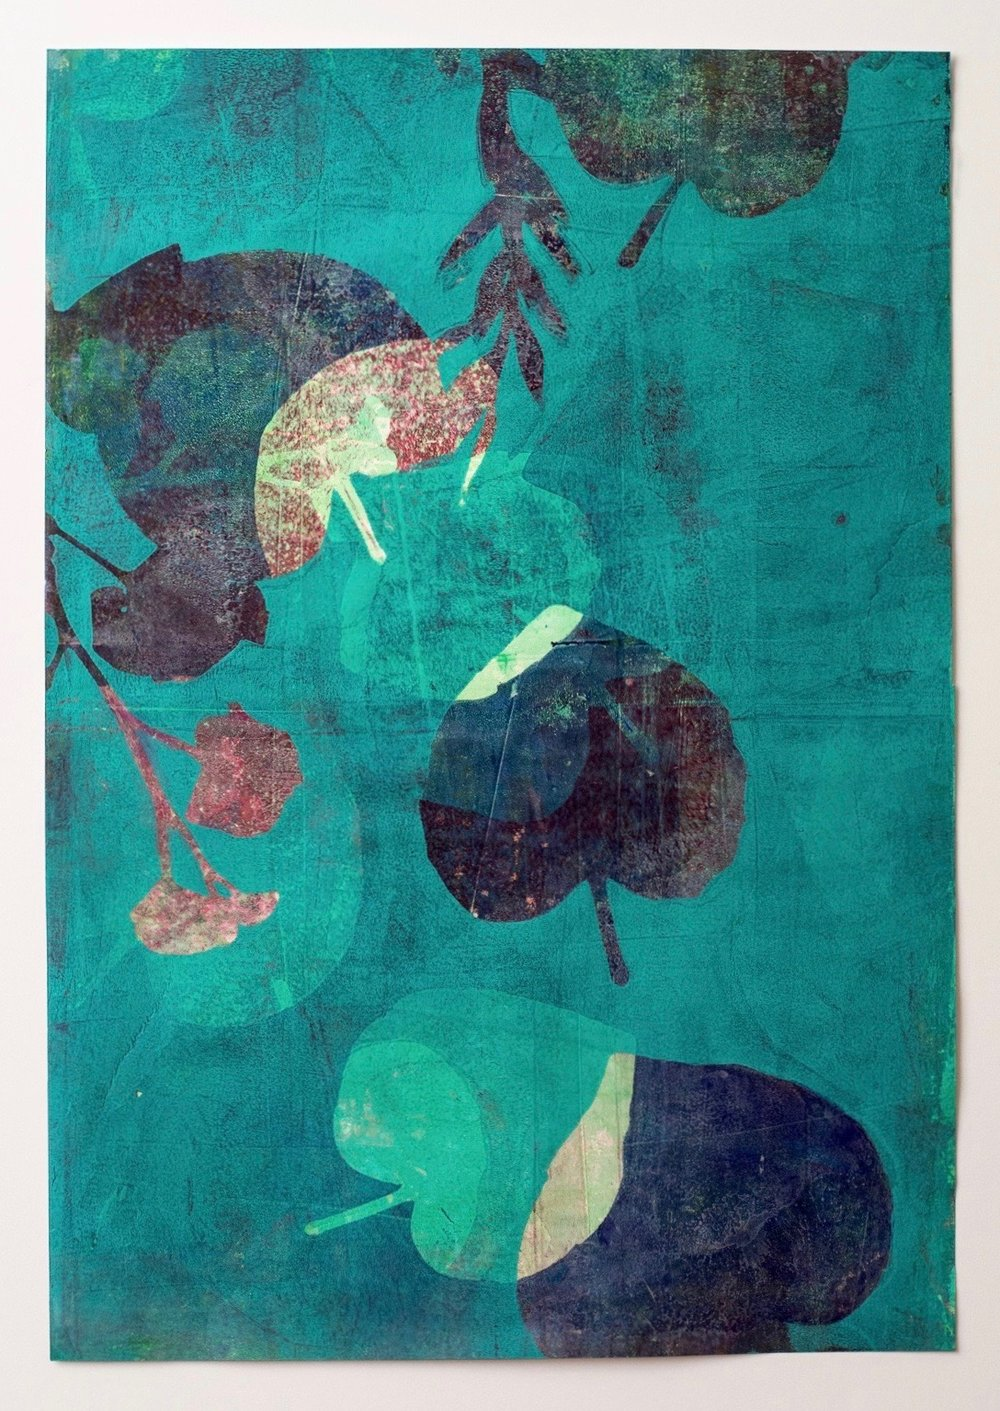 "After the Rain 1, 13"" x 19,"" Monoprint Collage"